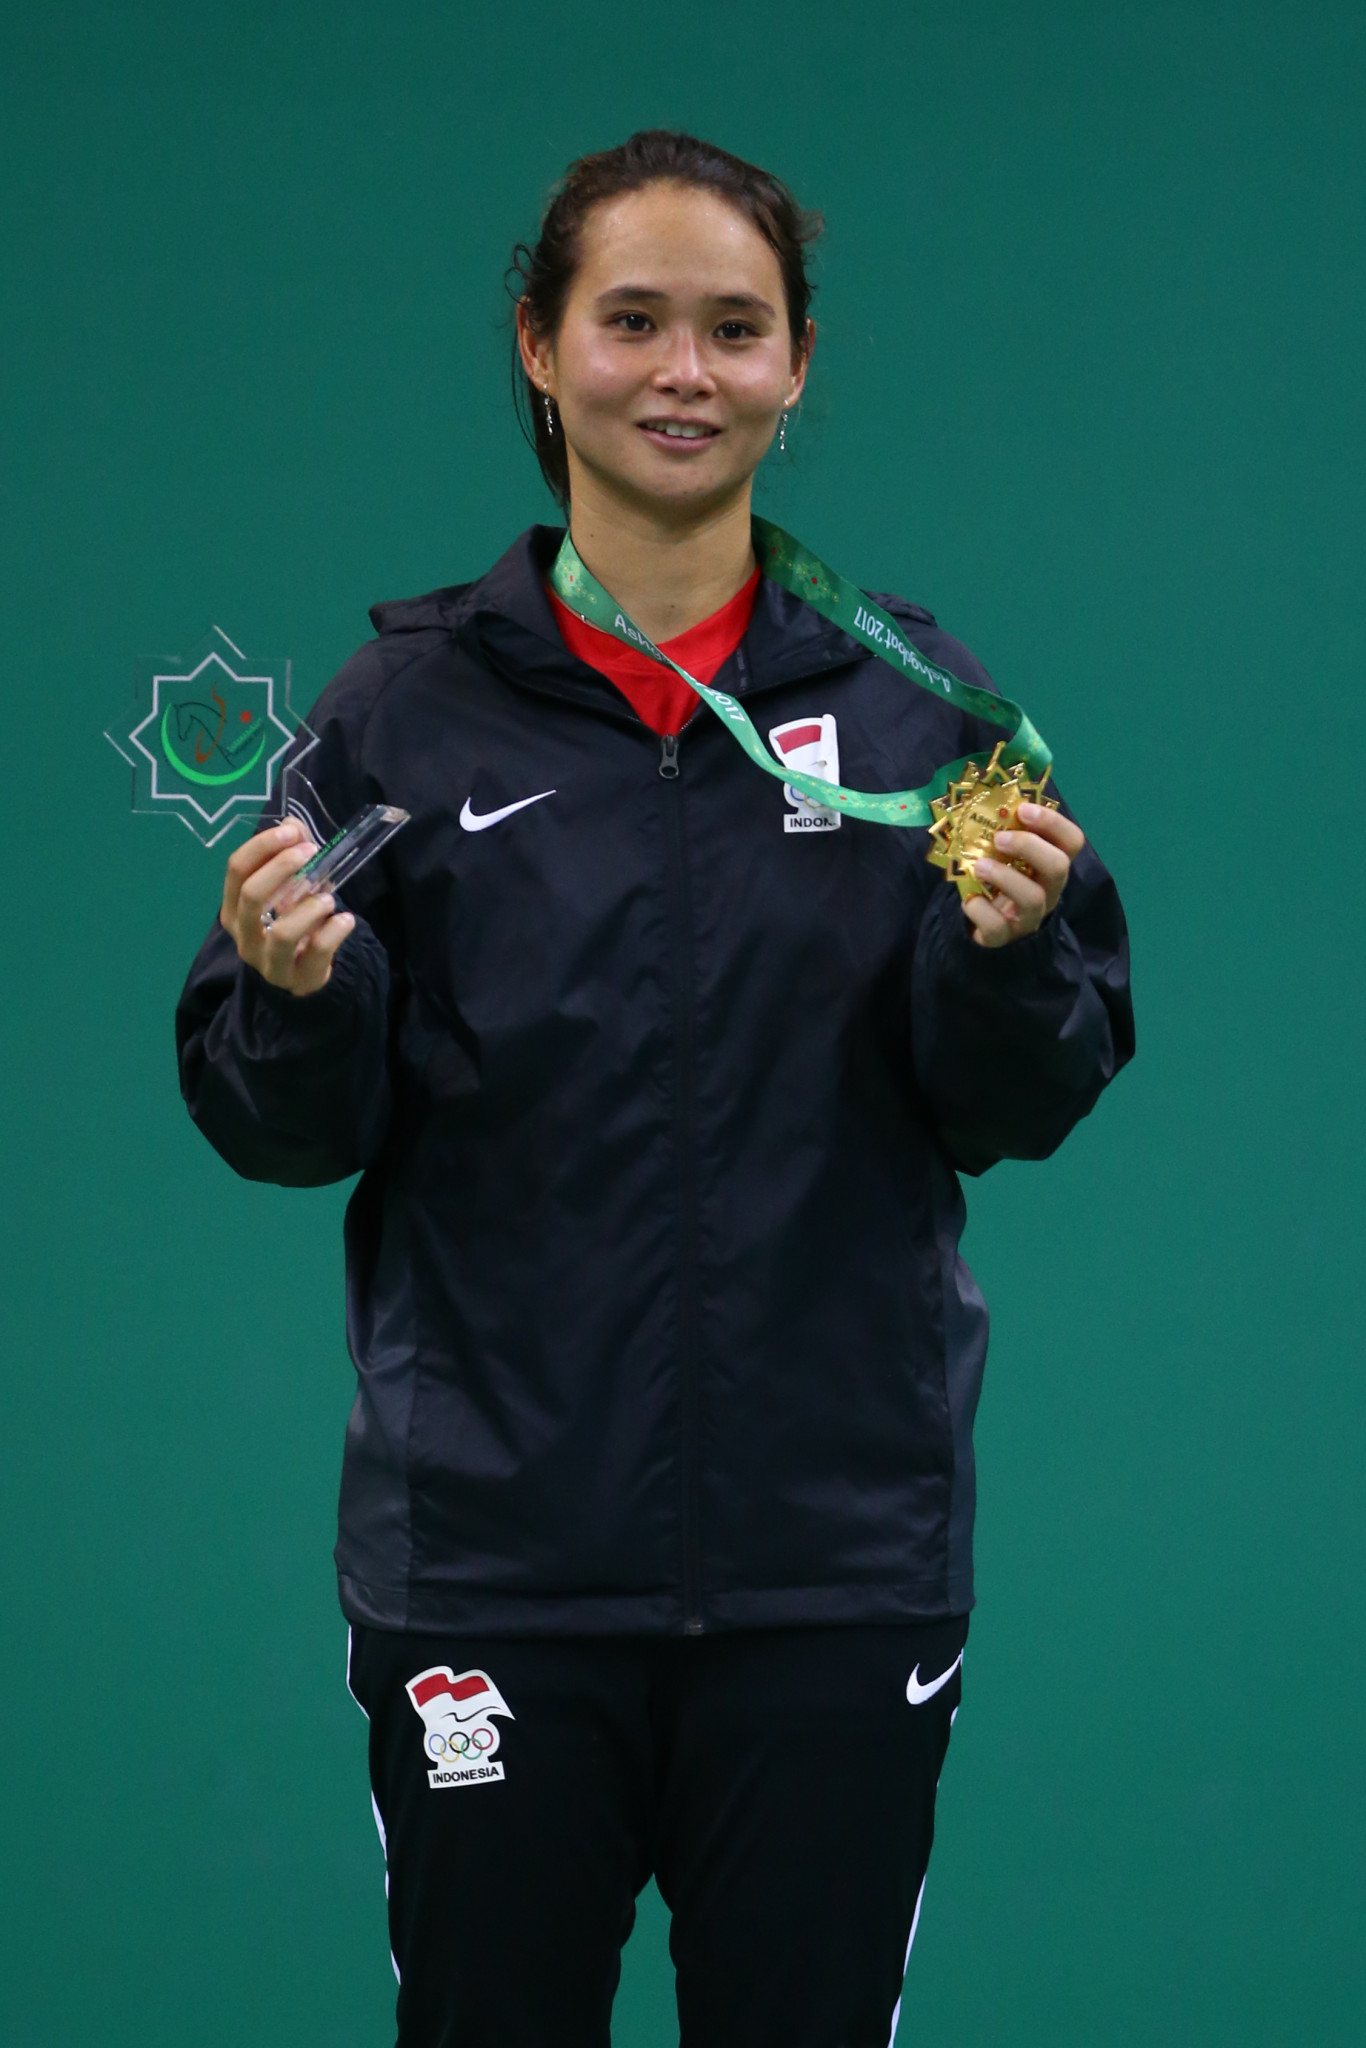 Gumulya wins all-Indonesian women's singles indoor tennis final on day 11 of Ashgabat 2017